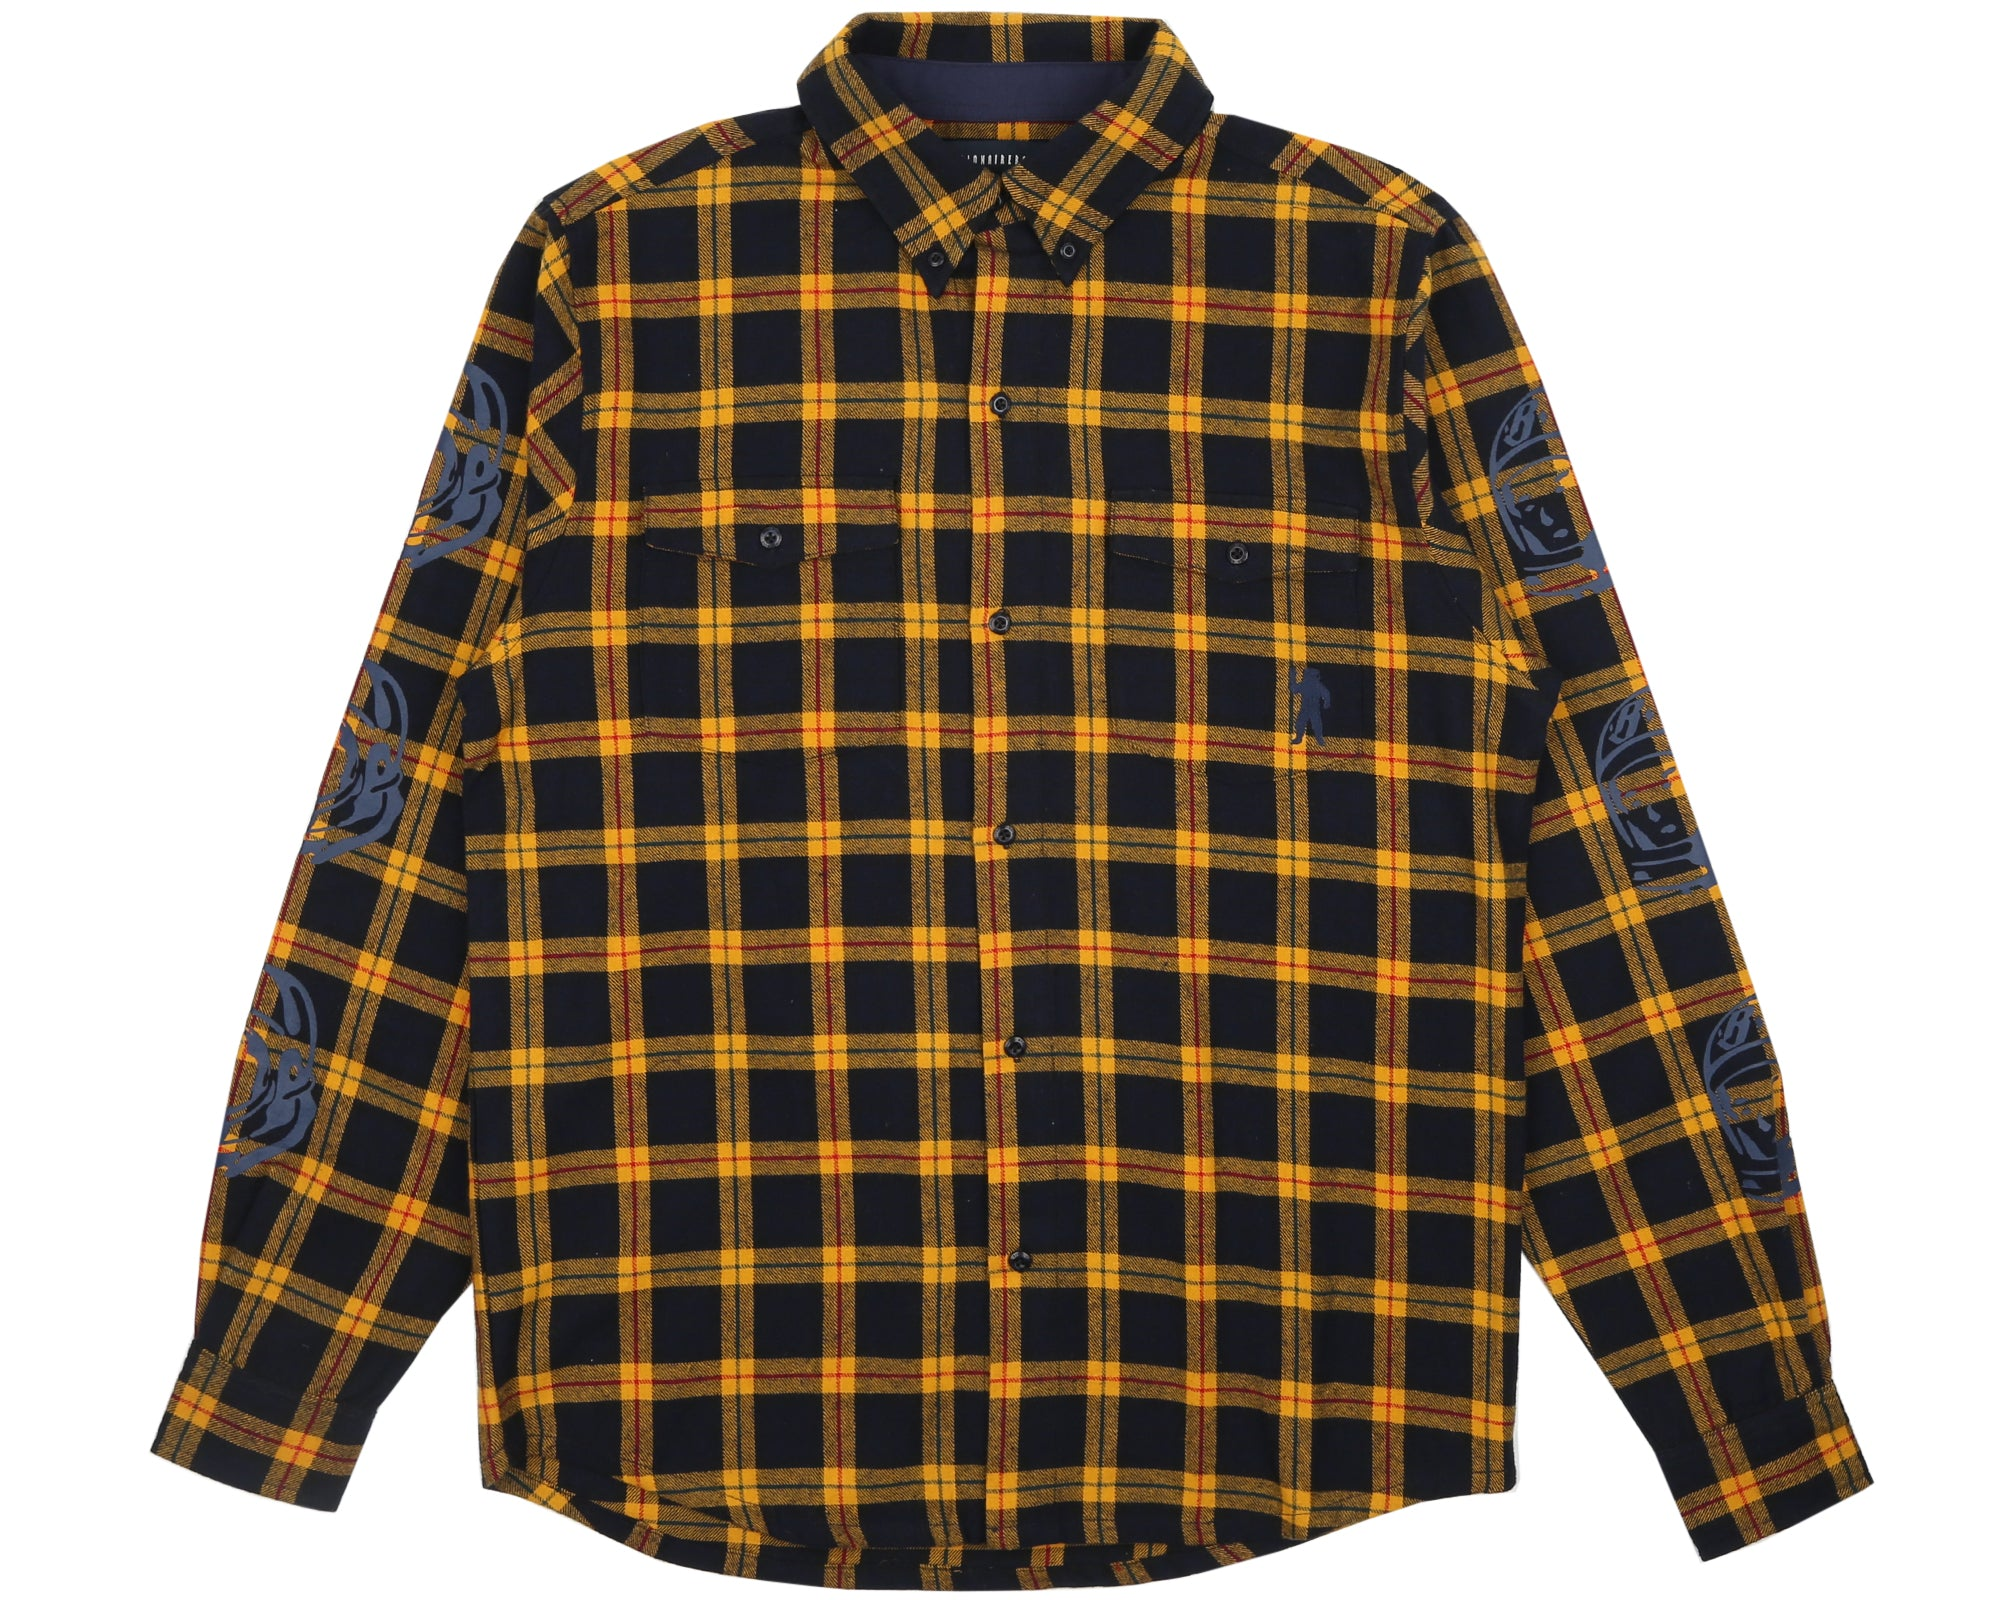 HELMET PRINT CHECK SHIRT - GOLDEN YELLOW